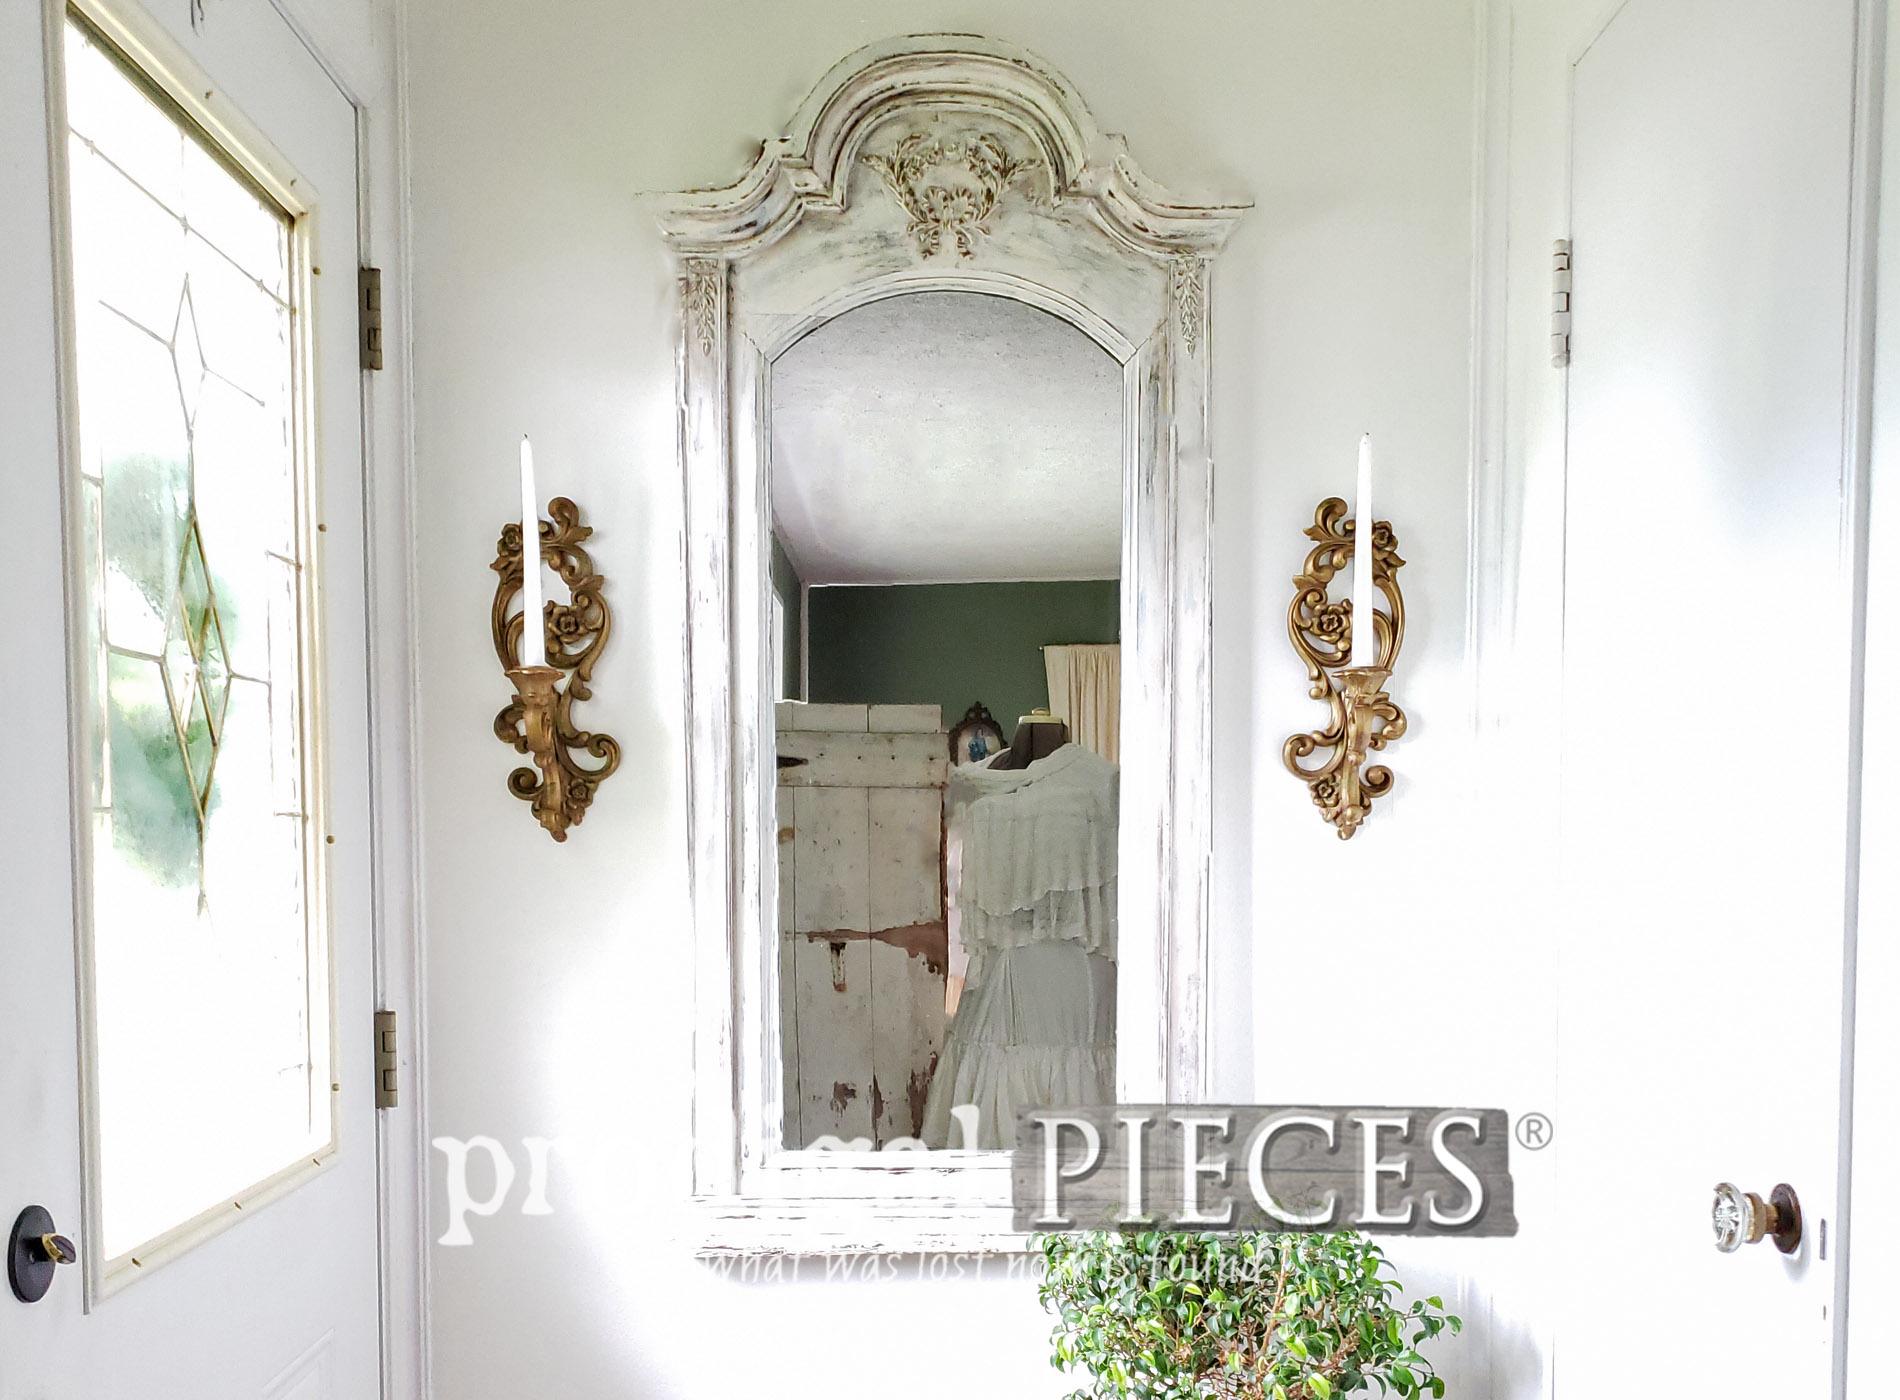 Featured Upcycled Dresser Mirror into Beautiful Entry Decor by Larissa of Prodigal Pieces | prodigalpieces.com